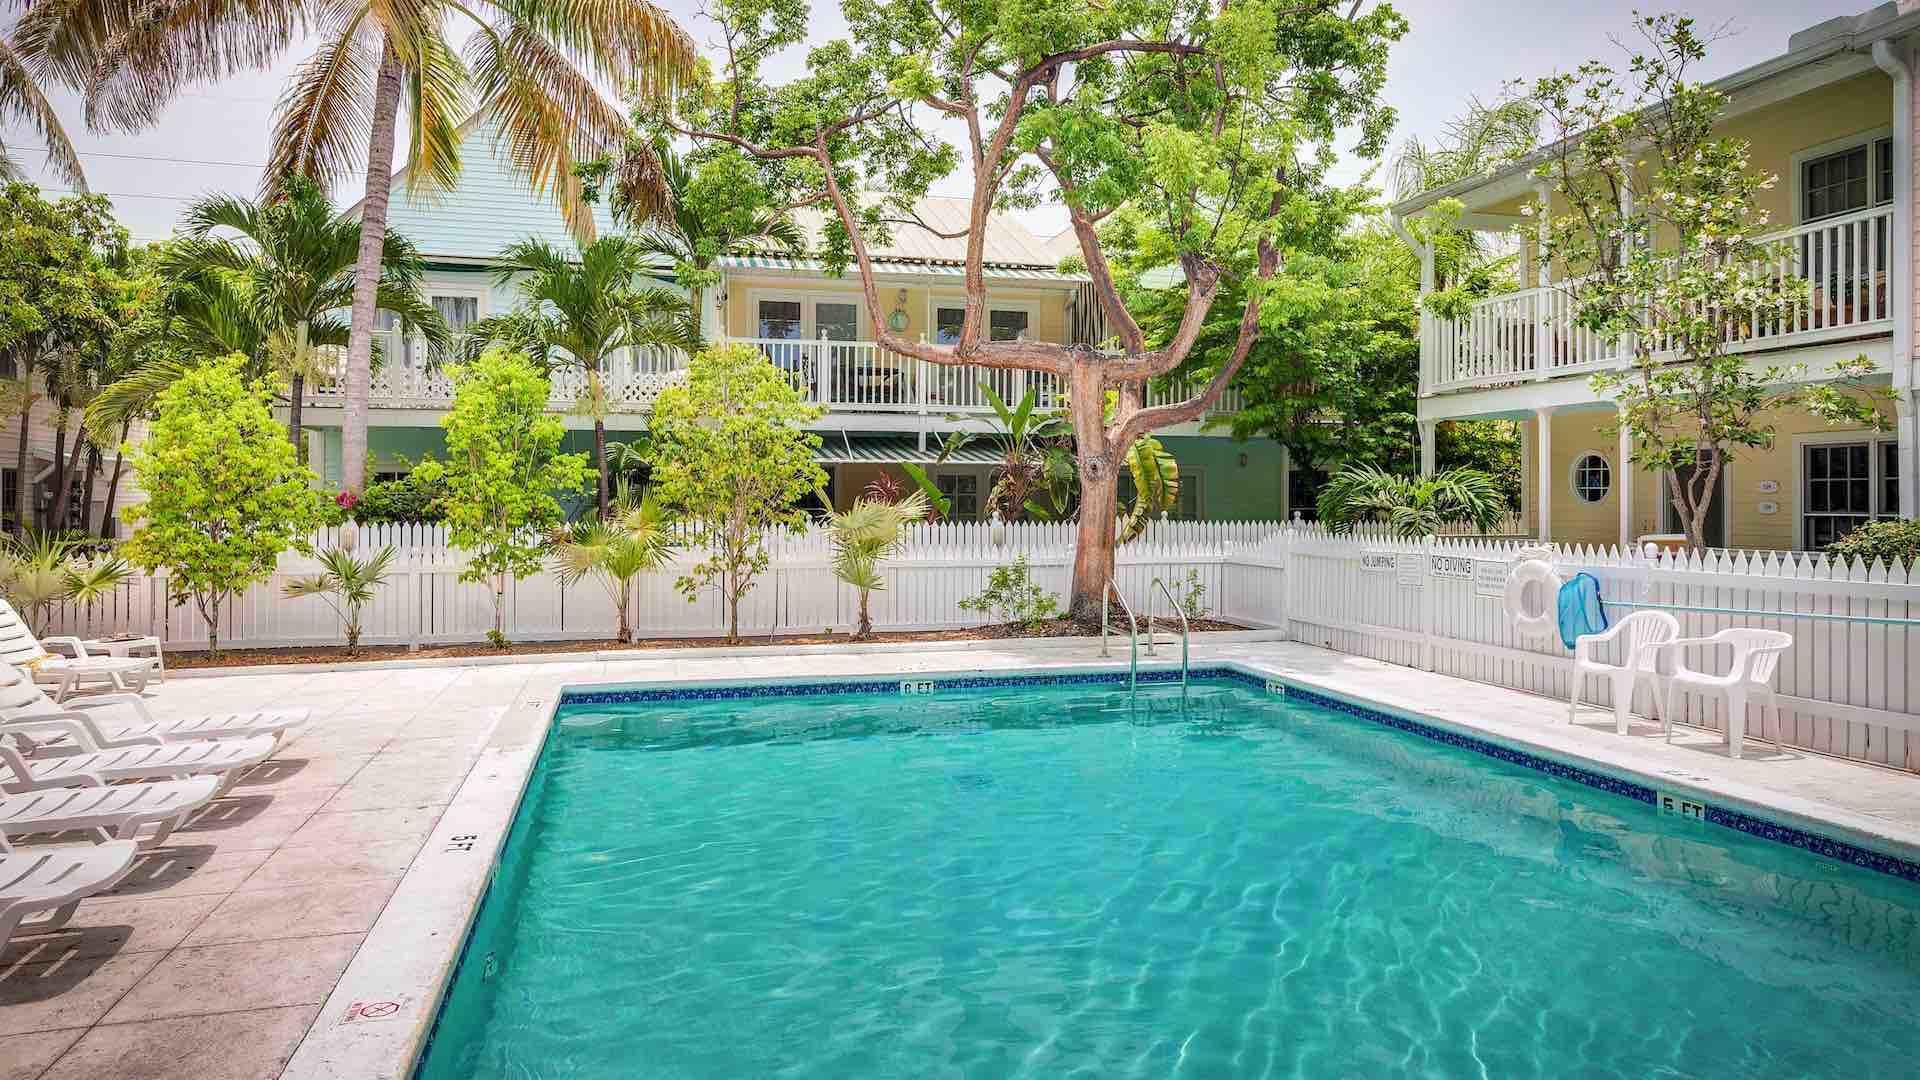 The Community Pool is located a short walk from the condo...